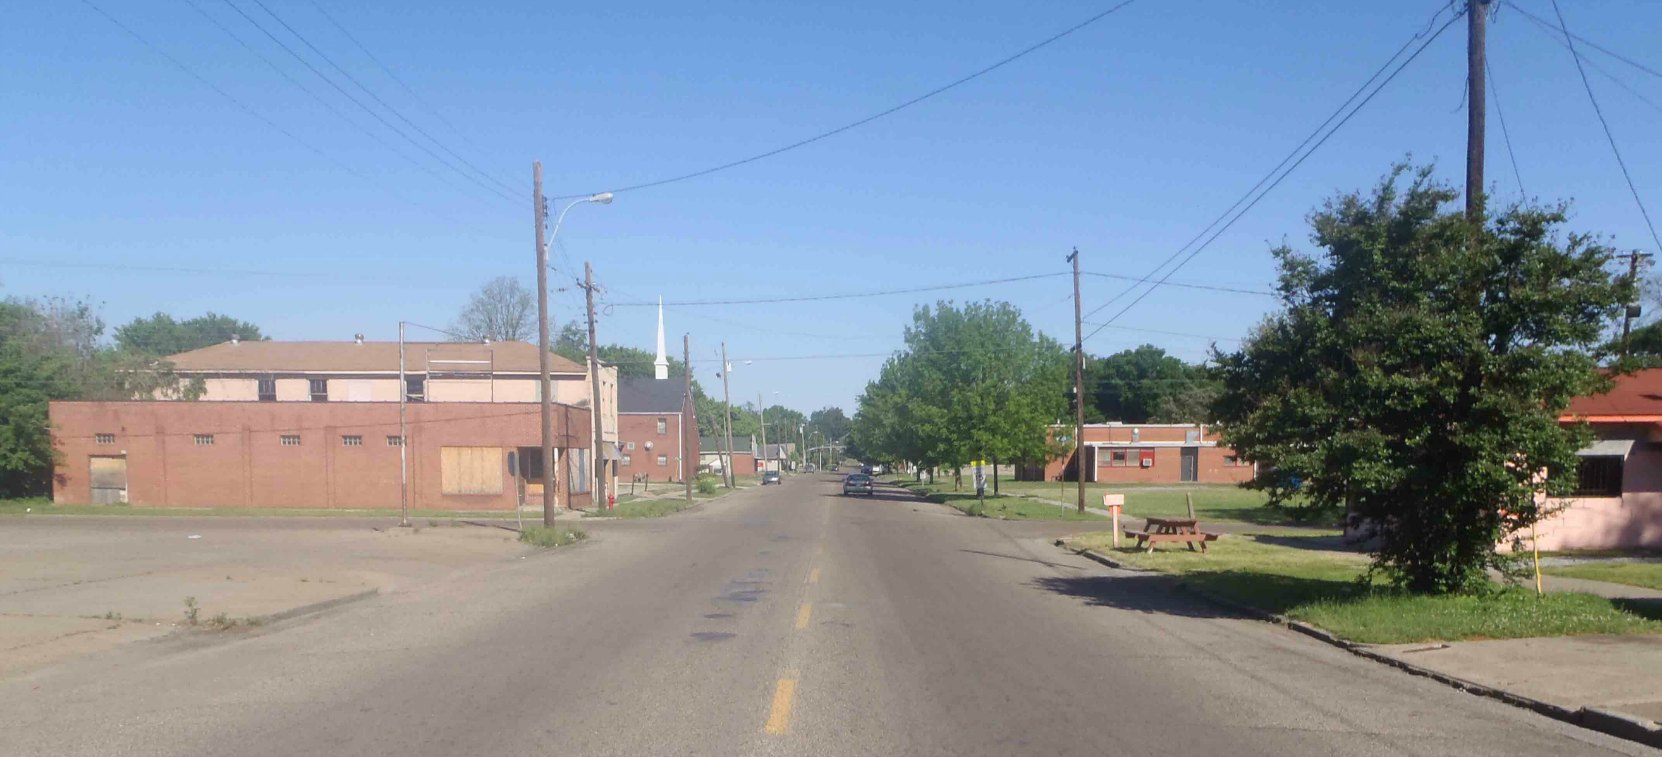 Nelson Street, Greenville, Mississippi, as seen from the Mississippi Blues Trail marker